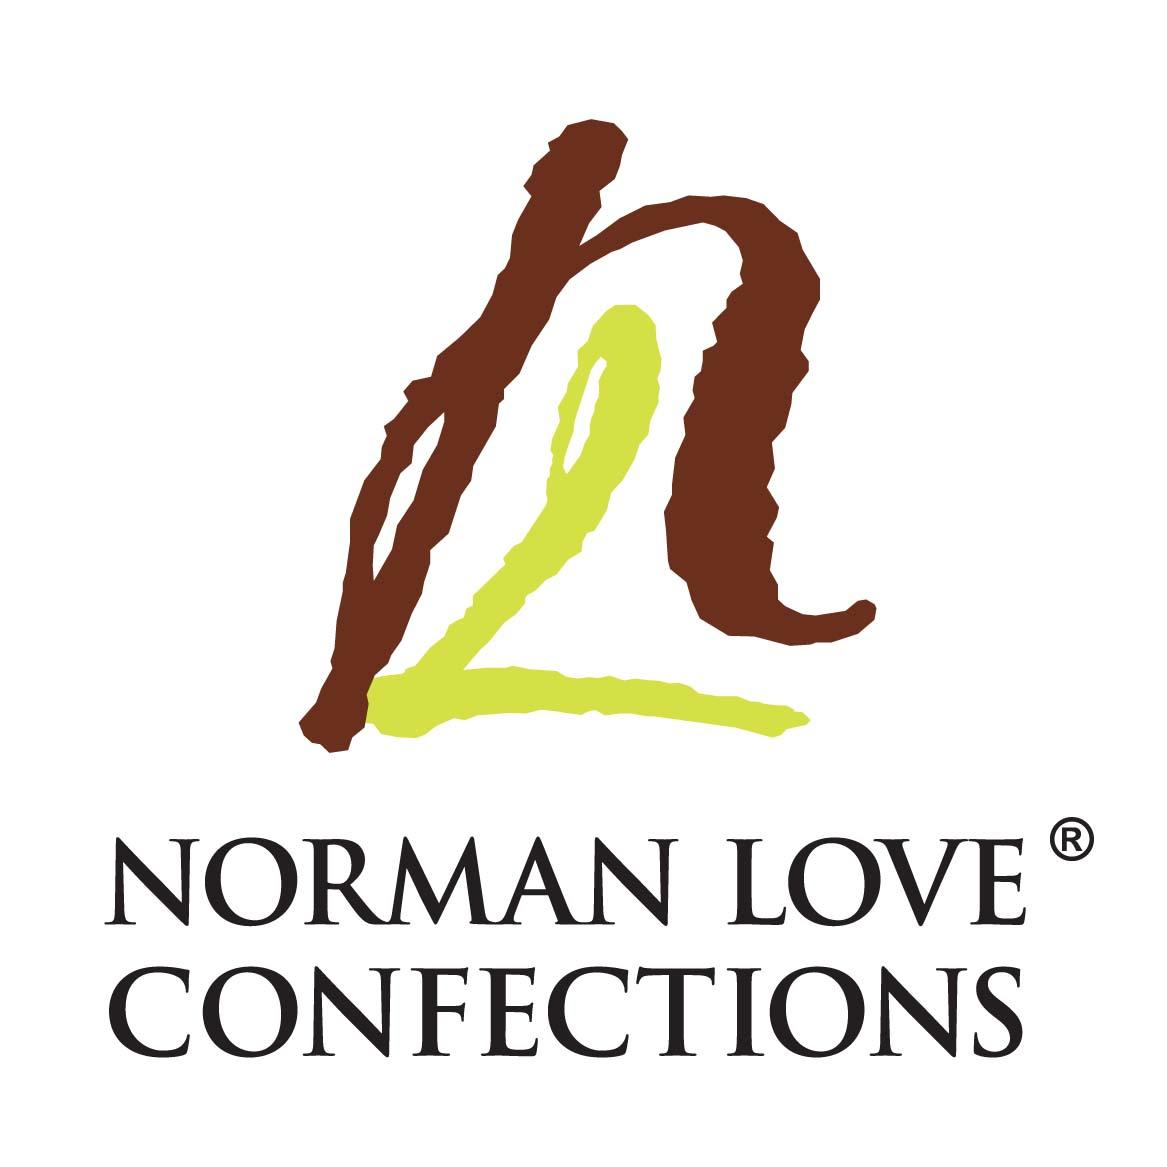 Norman Love Confections - McGregor, Fort Myers - Fort Myers, FL 33919 - (239)672-8797 | ShowMeLocal.com